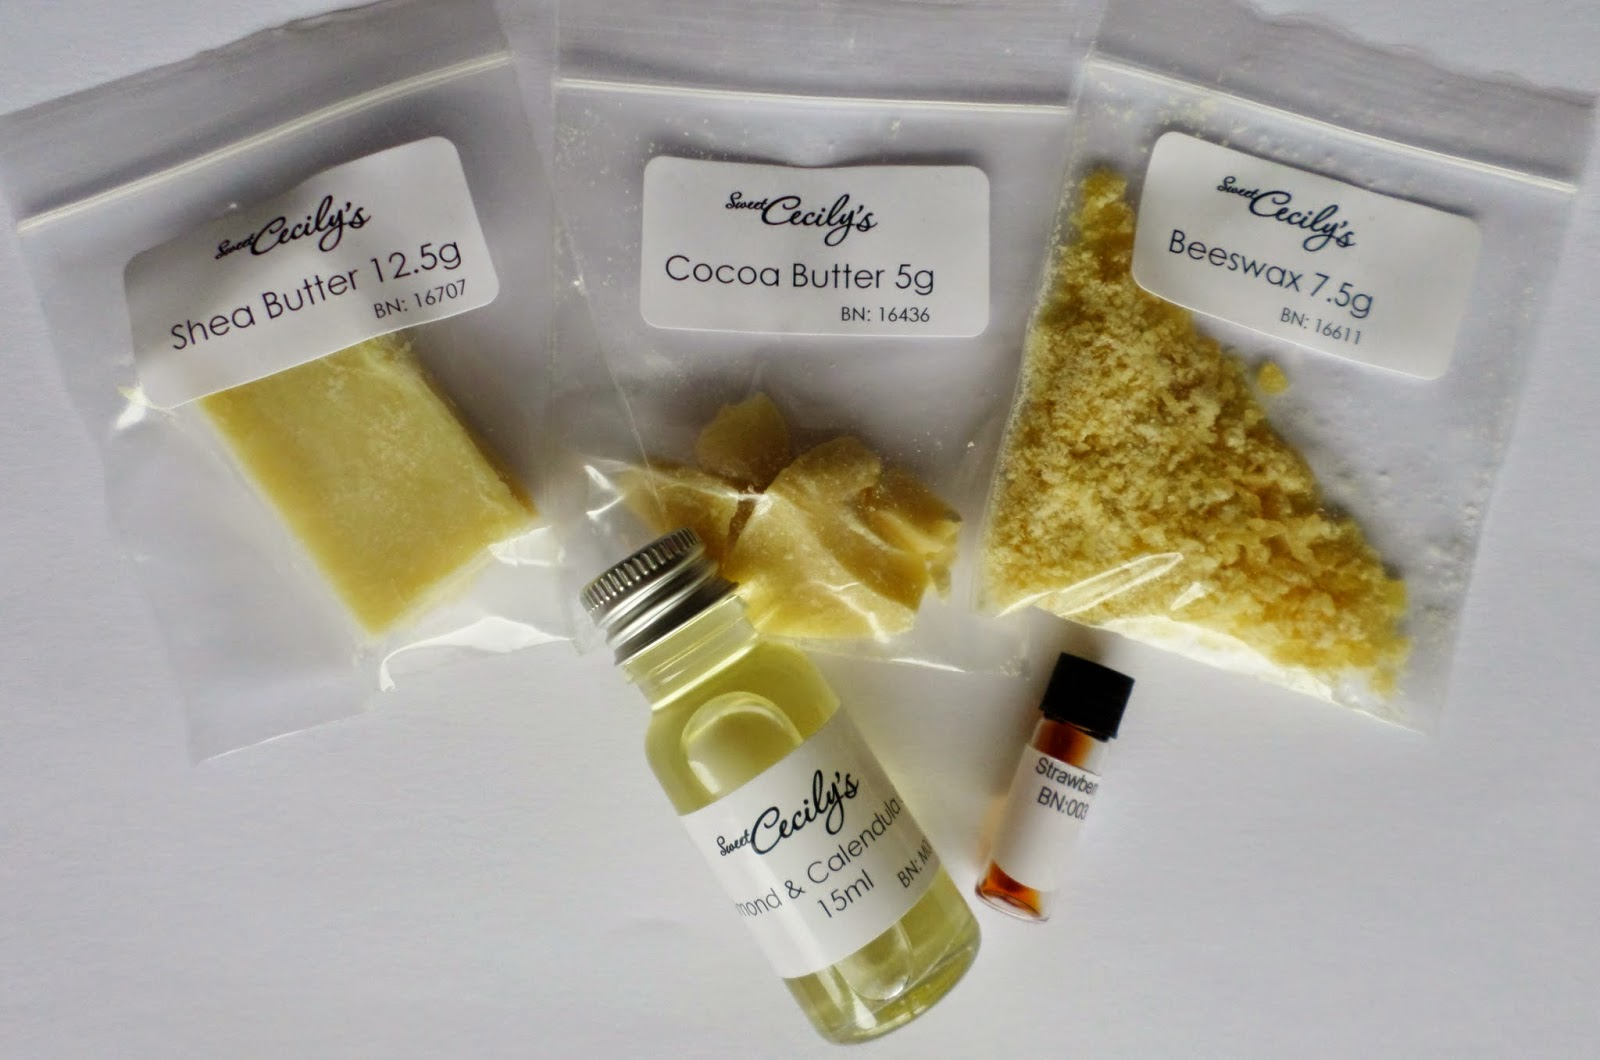 Sweet Cecily's Make Your Own DIY Natural Lipbalm Kit in Strawberry